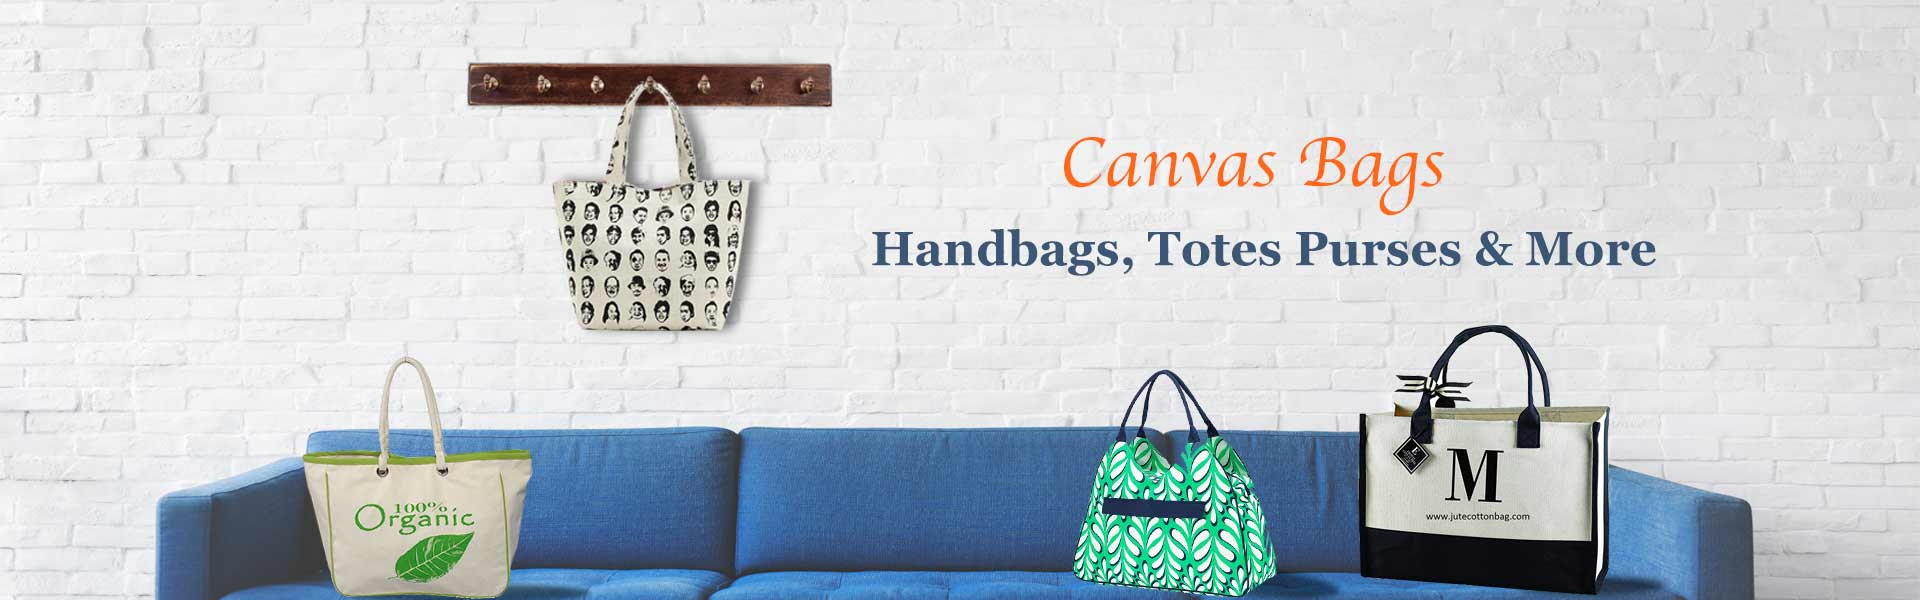 Wholesale Canvas Bags Supplier in Mexico